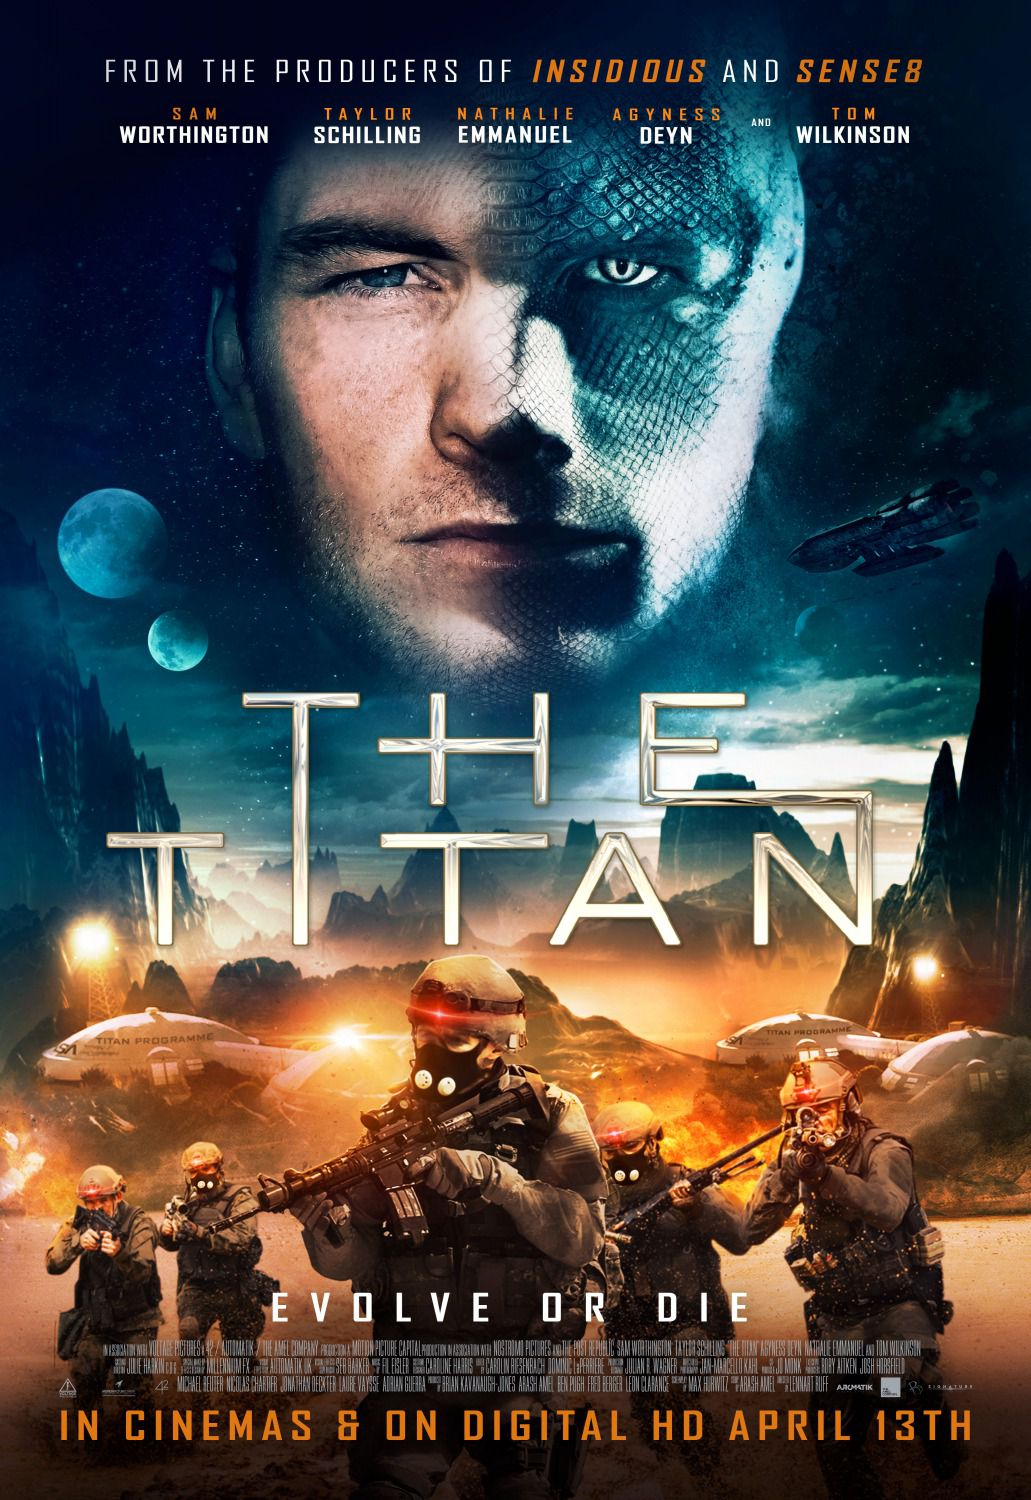 Titan - evolve or die - Sam Worthington, Taylor Schilling, Tom Wilkinson, Agyness Deyn - scifi alien poster 2018